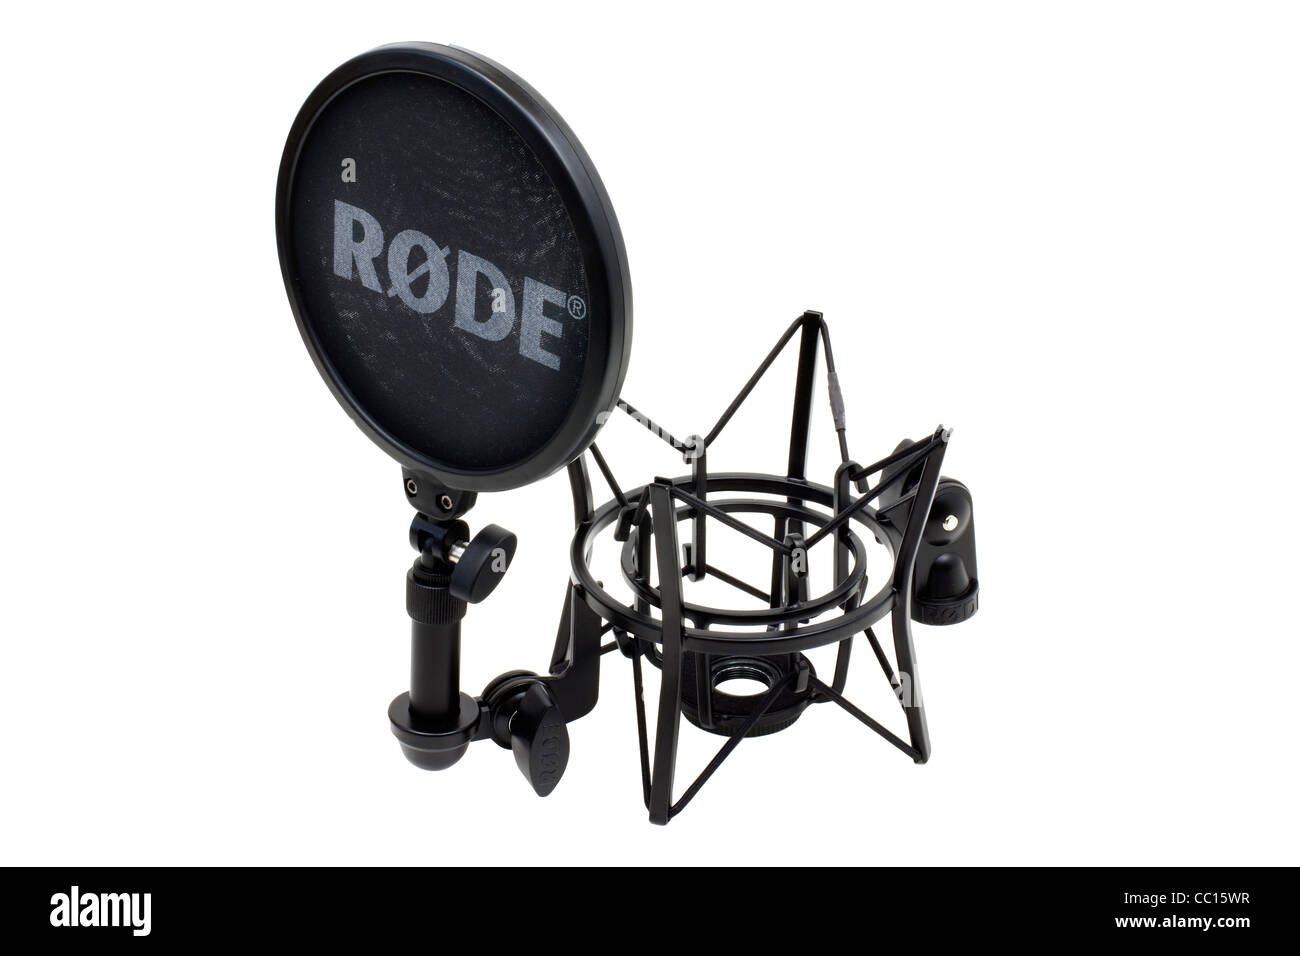 Product rode mic shock mount spider on white retail shots against pure white background photographed under studio - Stock Image